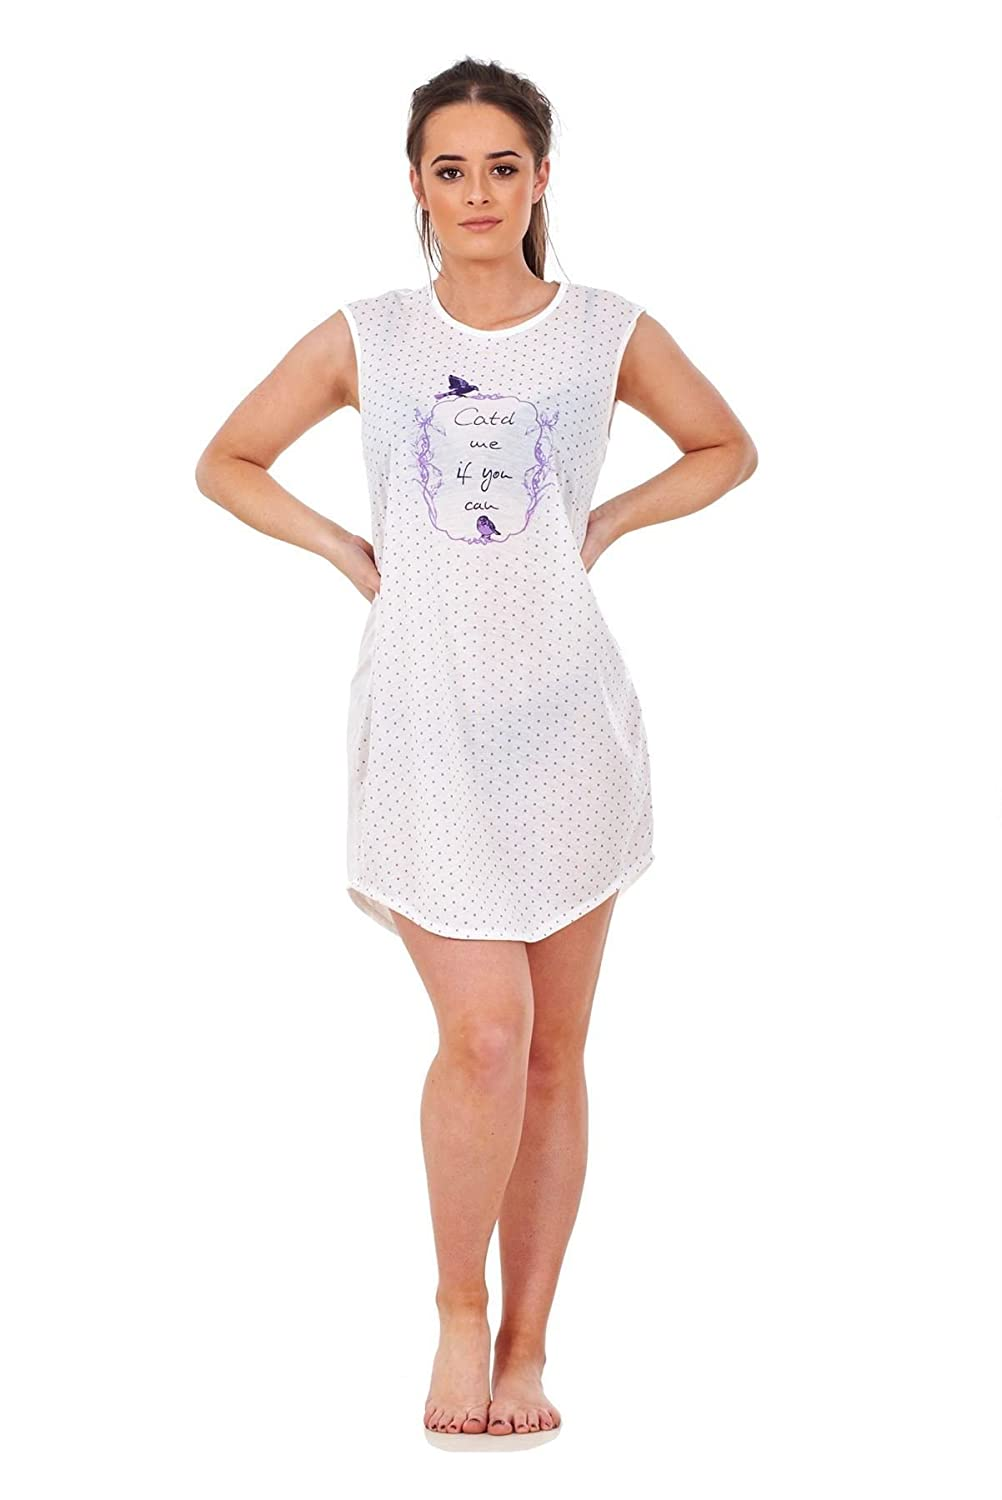 Ladies Nightwear Crew Neck Spotted Bird Print Sleeveless Jersey Nightie M  to XXL  Amazon.co.uk  Clothing d66e6d066